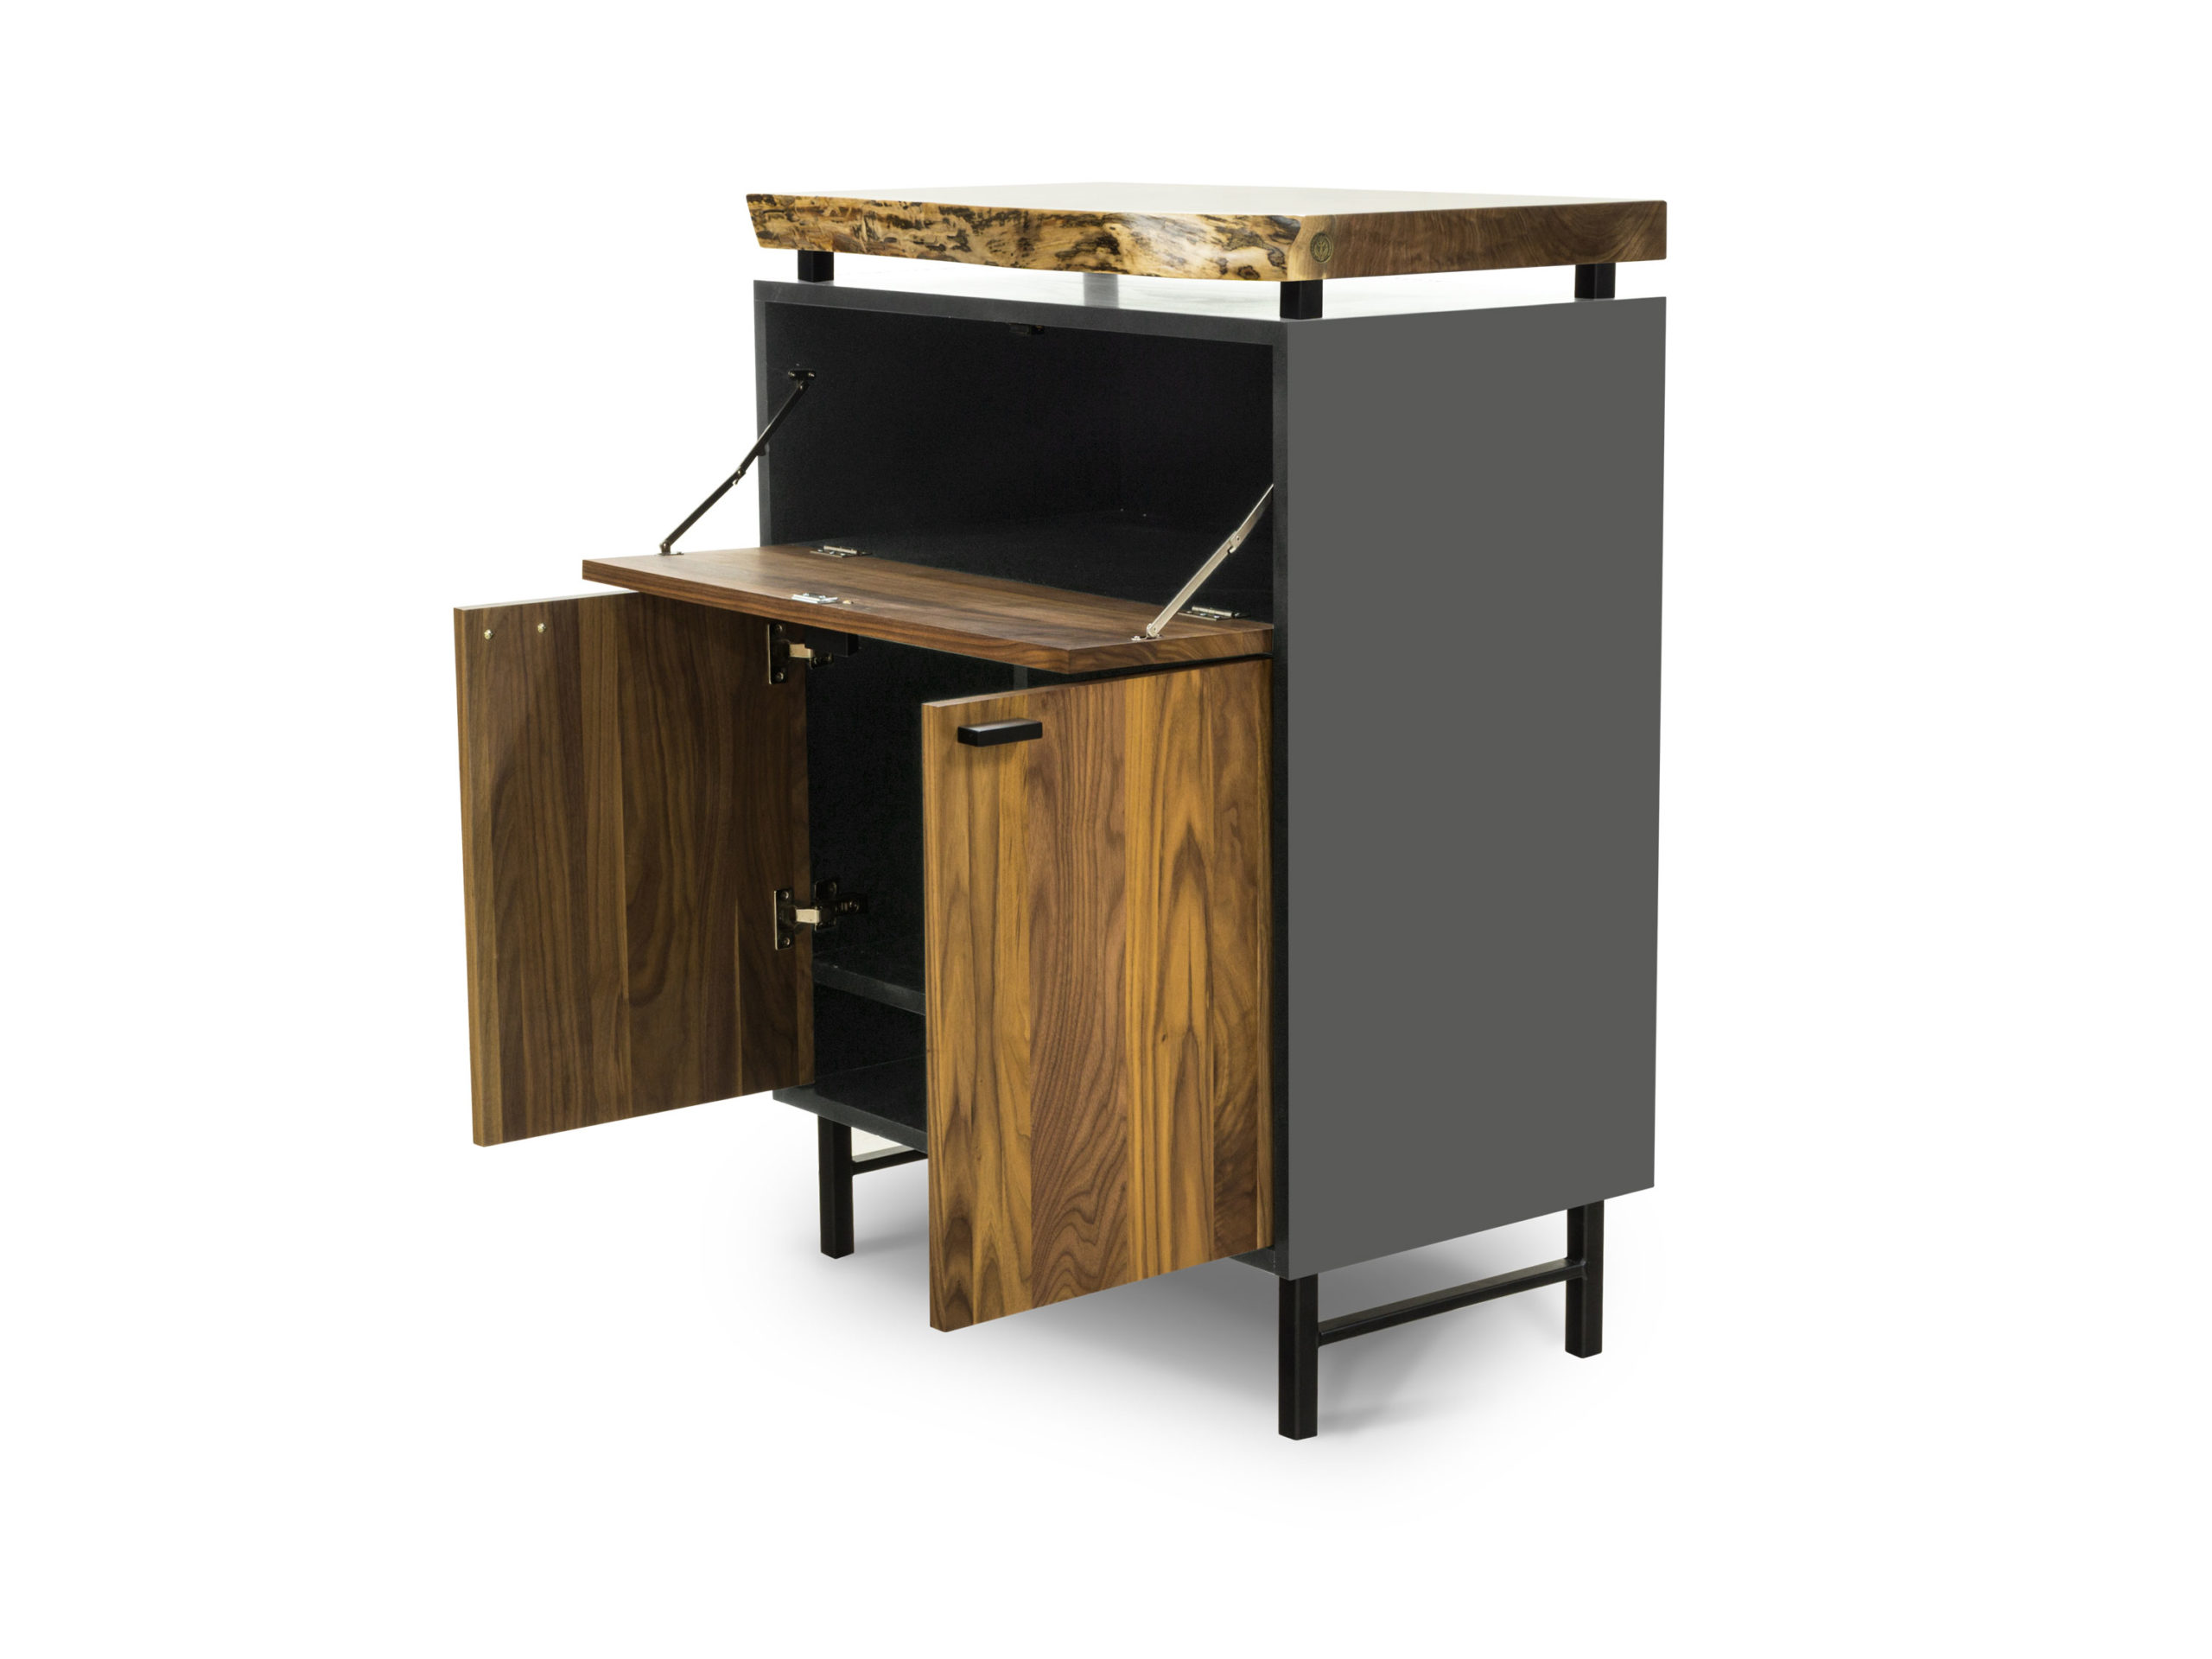 008A_Bar_Cabinet_Walnut05